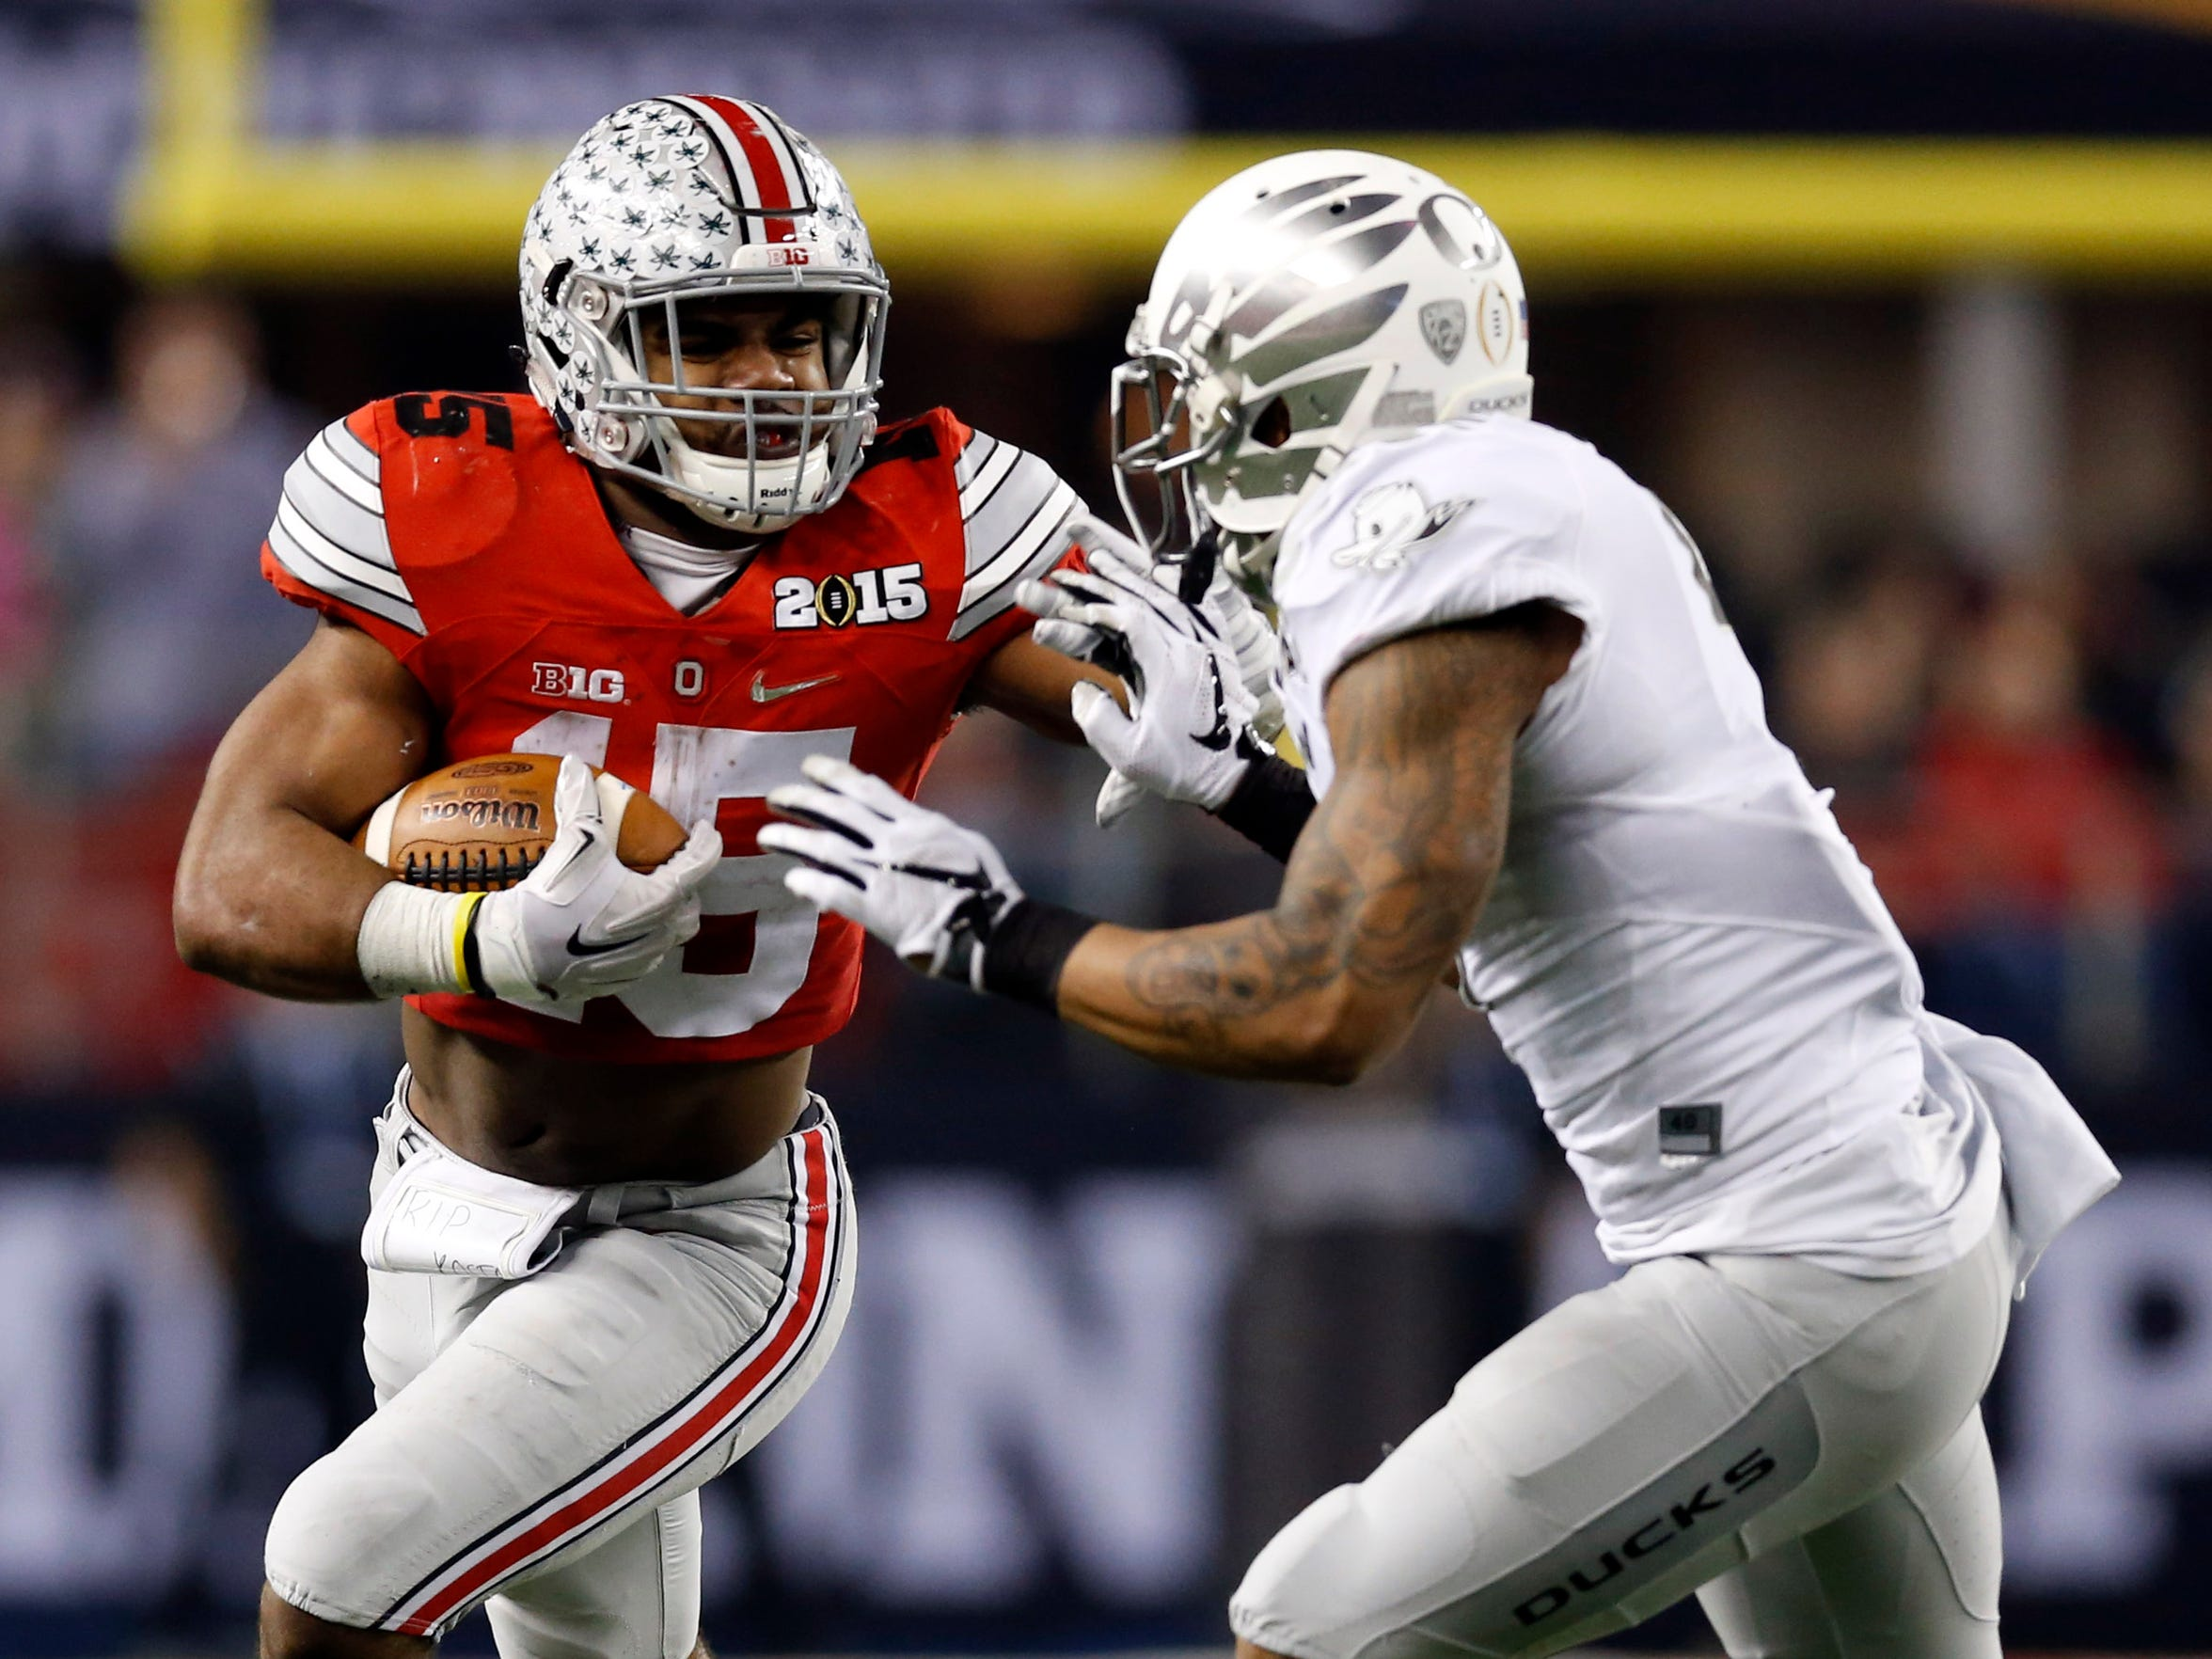 Ohio State running back Ezekiel Elliott (15)